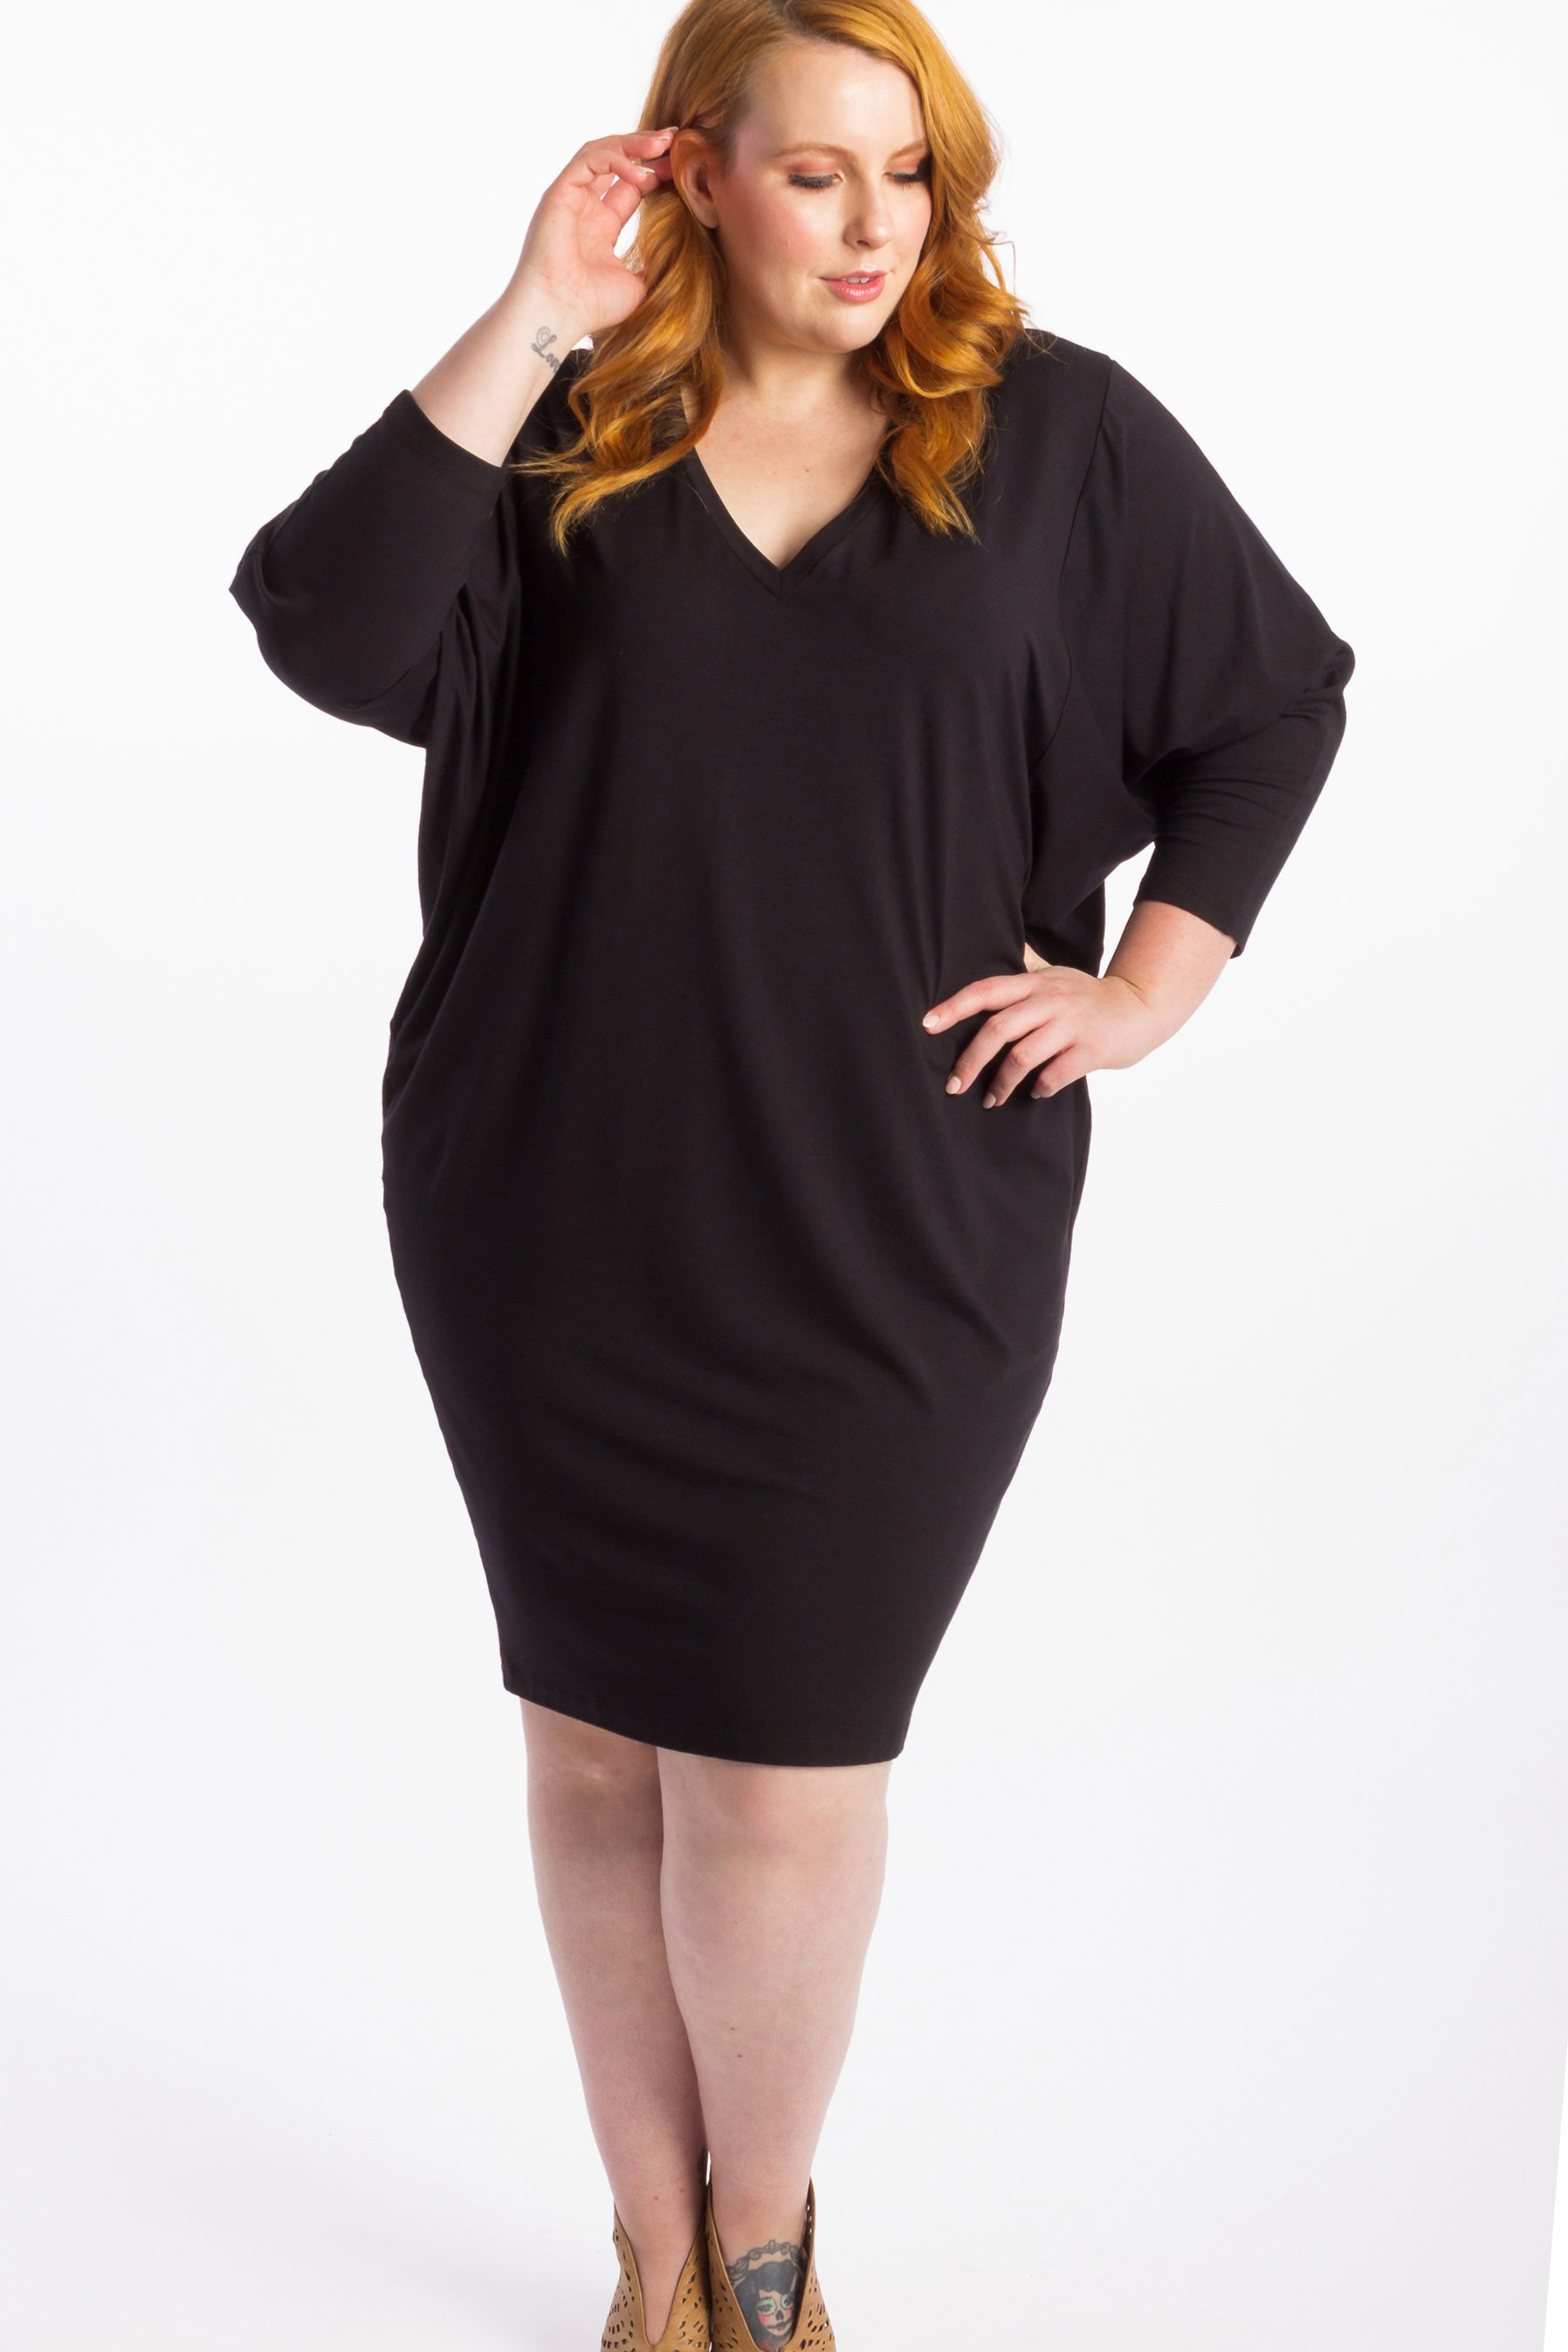 Rebel Yell Batwing Dress - Black